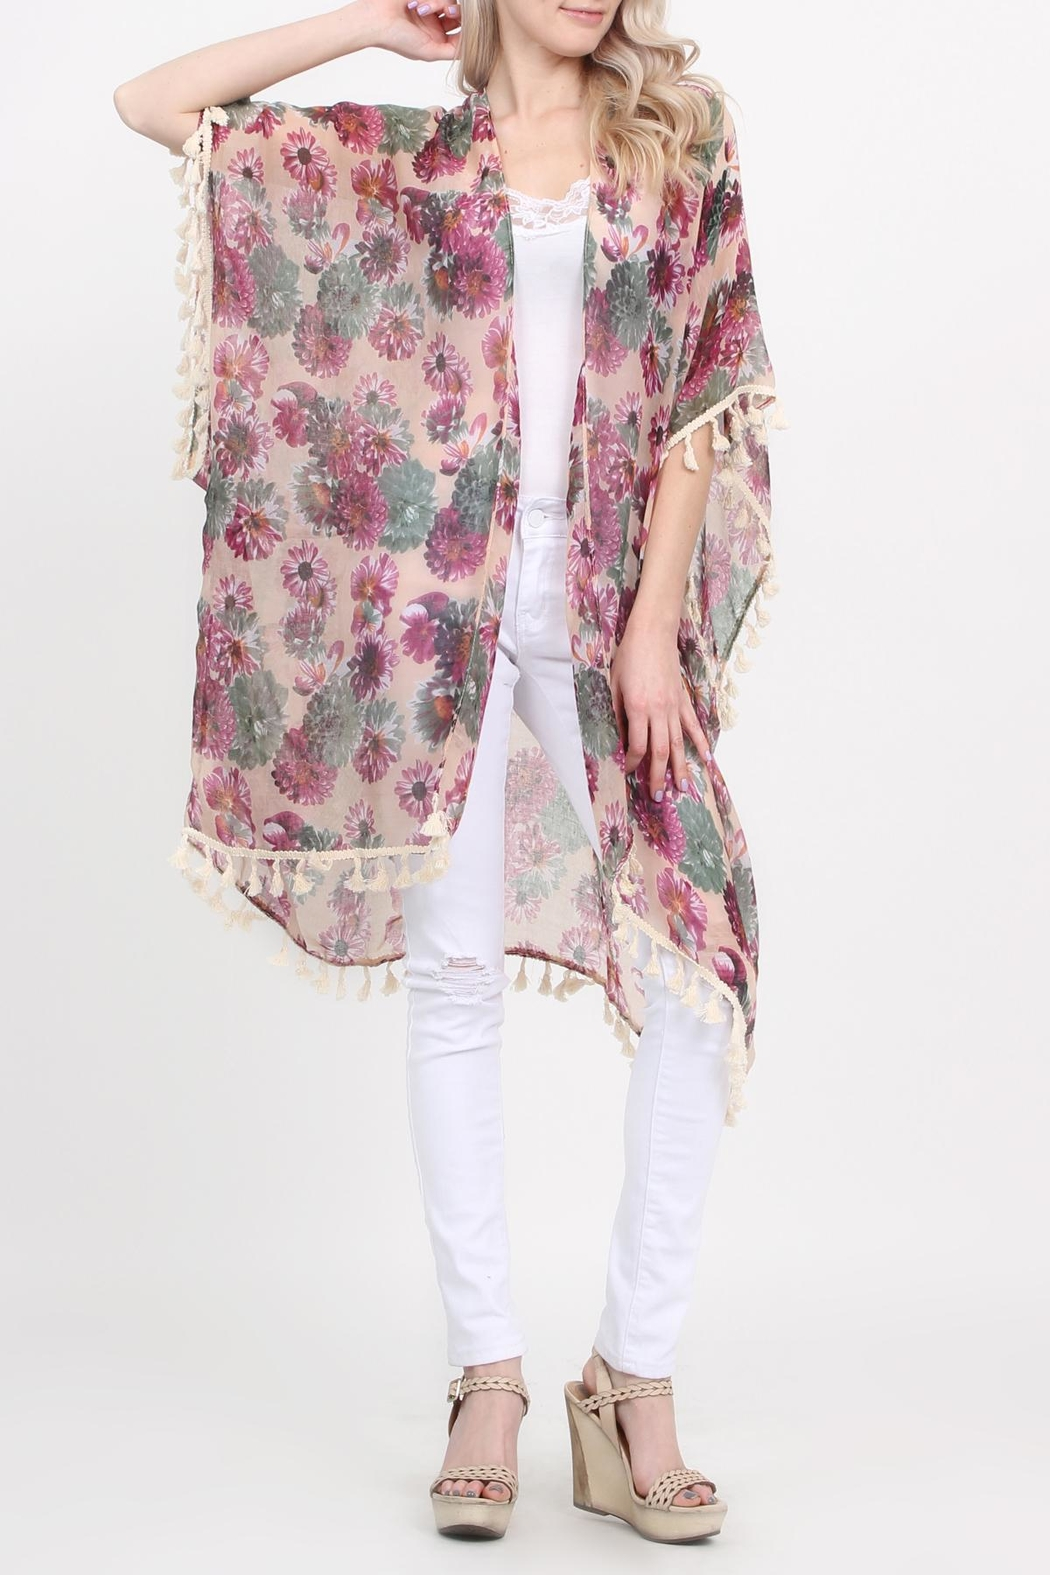 Riah Fashion Floral-Print Semi-Sheer Tassel-Cardigan - Front Full Image